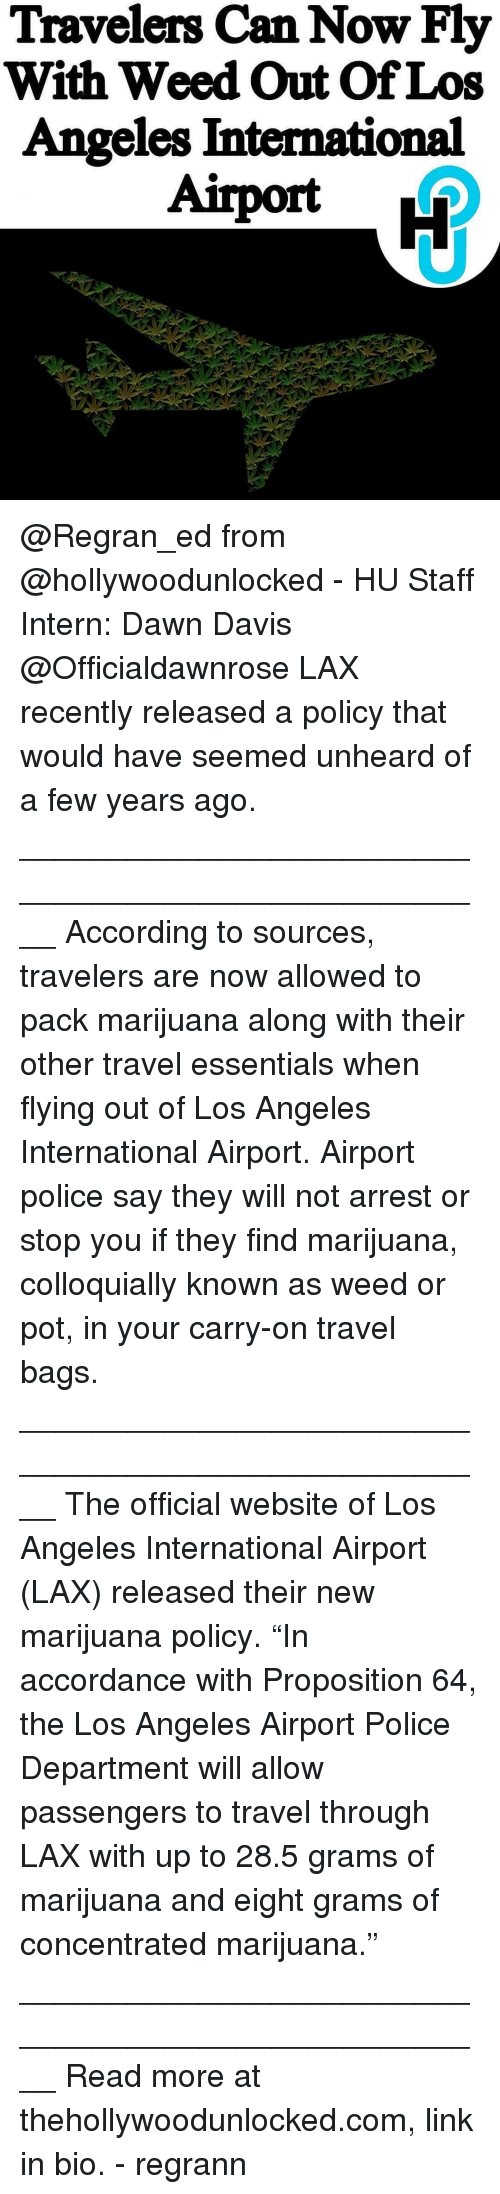 """Memes, Police, and Weed: Travelers Can Now Fly  With Weed Out Of Los  Angeles International @Regran_ed from @hollywoodunlocked - HU Staff Intern: Dawn Davis @Officialdawnrose LAX recently released a policy that would have seemed unheard of a few years ago. ____________________________________________________ According to sources, travelers are now allowed to pack marijuana along with their other travel essentials when flying out of Los Angeles International Airport. Airport police say they will not arrest or stop you if they find marijuana, colloquially known as weed or pot, in your carry-on travel bags. ____________________________________________________ The official website of Los Angeles International Airport (LAX) released their new marijuana policy. """"In accordance with Proposition 64, the Los Angeles Airport Police Department will allow passengers to travel through LAX with up to 28.5 grams of marijuana and eight grams of concentrated marijuana."""" ____________________________________________________ Read more at thehollywoodunlocked.com, link in bio. - regrann"""